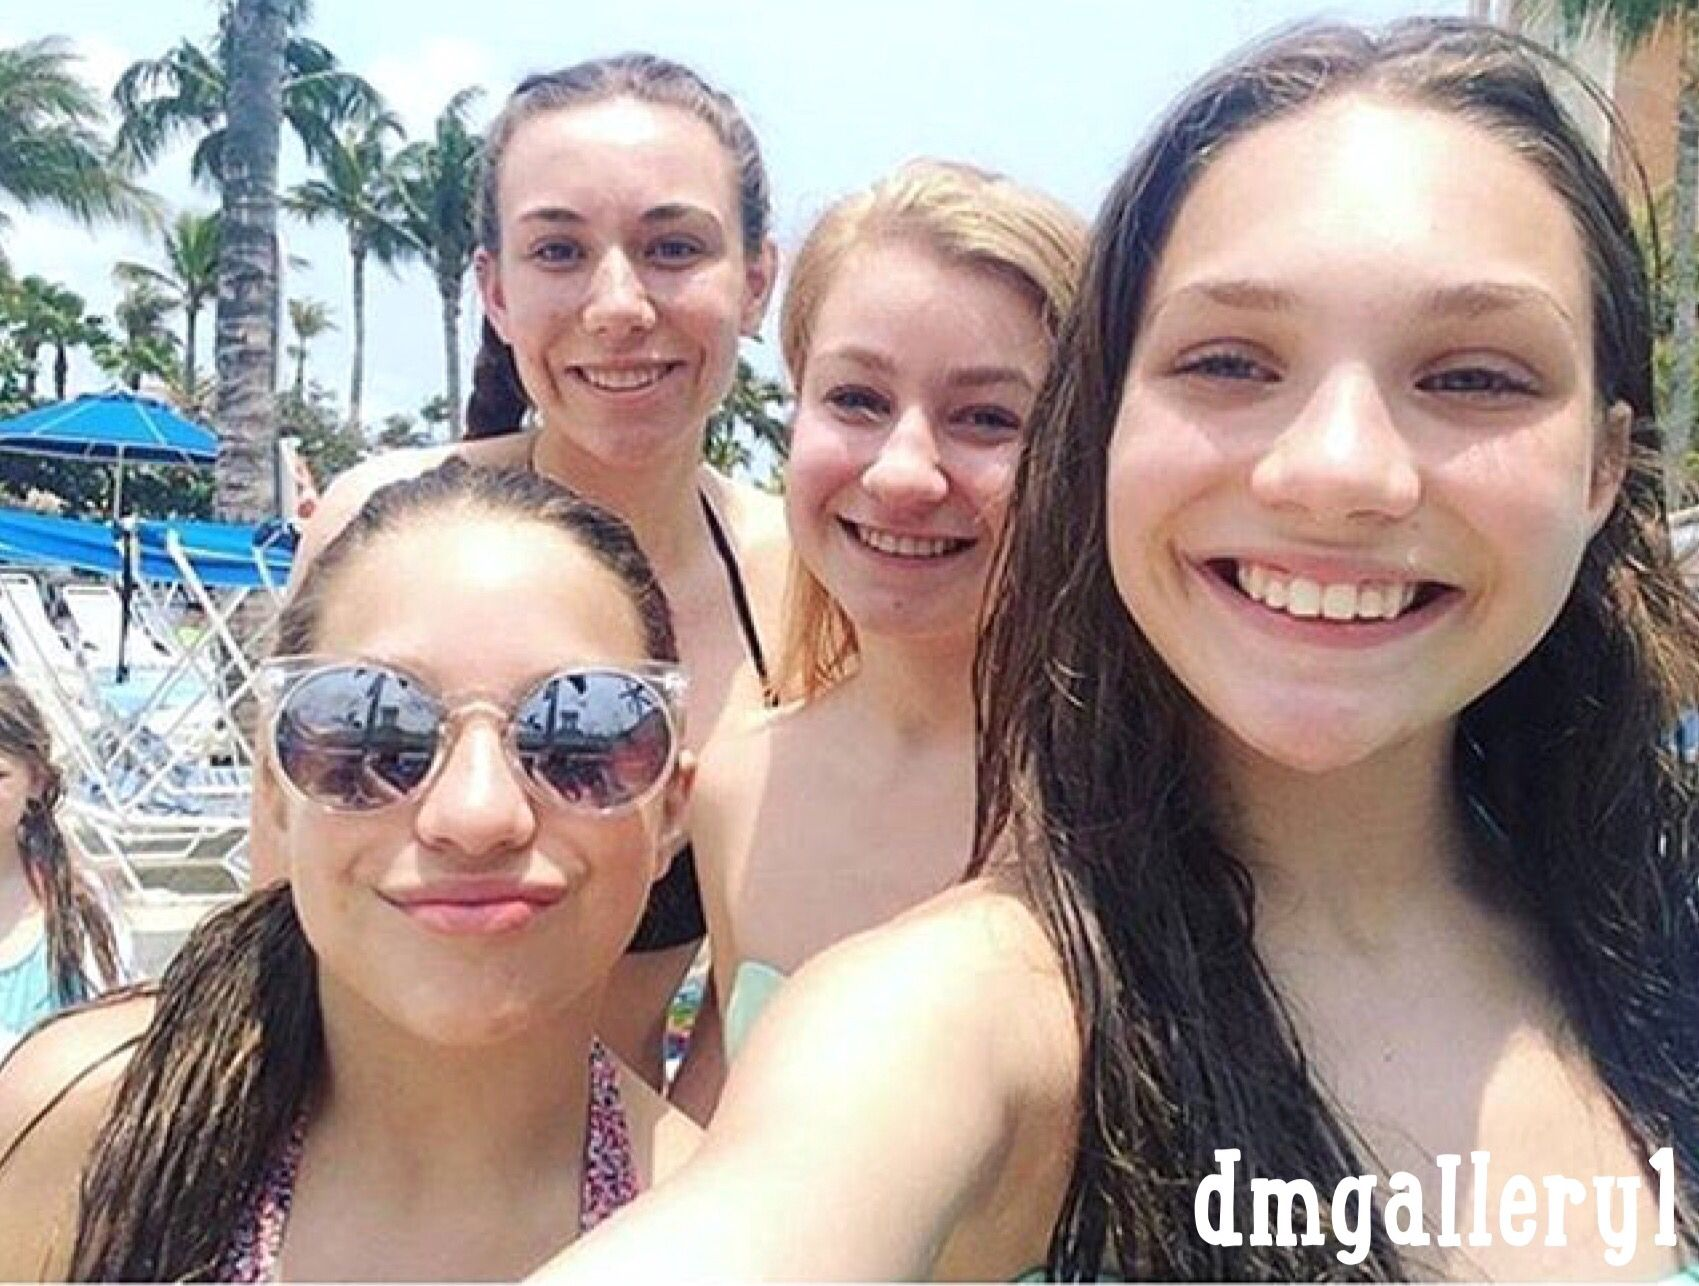 Mackenzie Ziegler with her sister Maddie and fans in Aruba